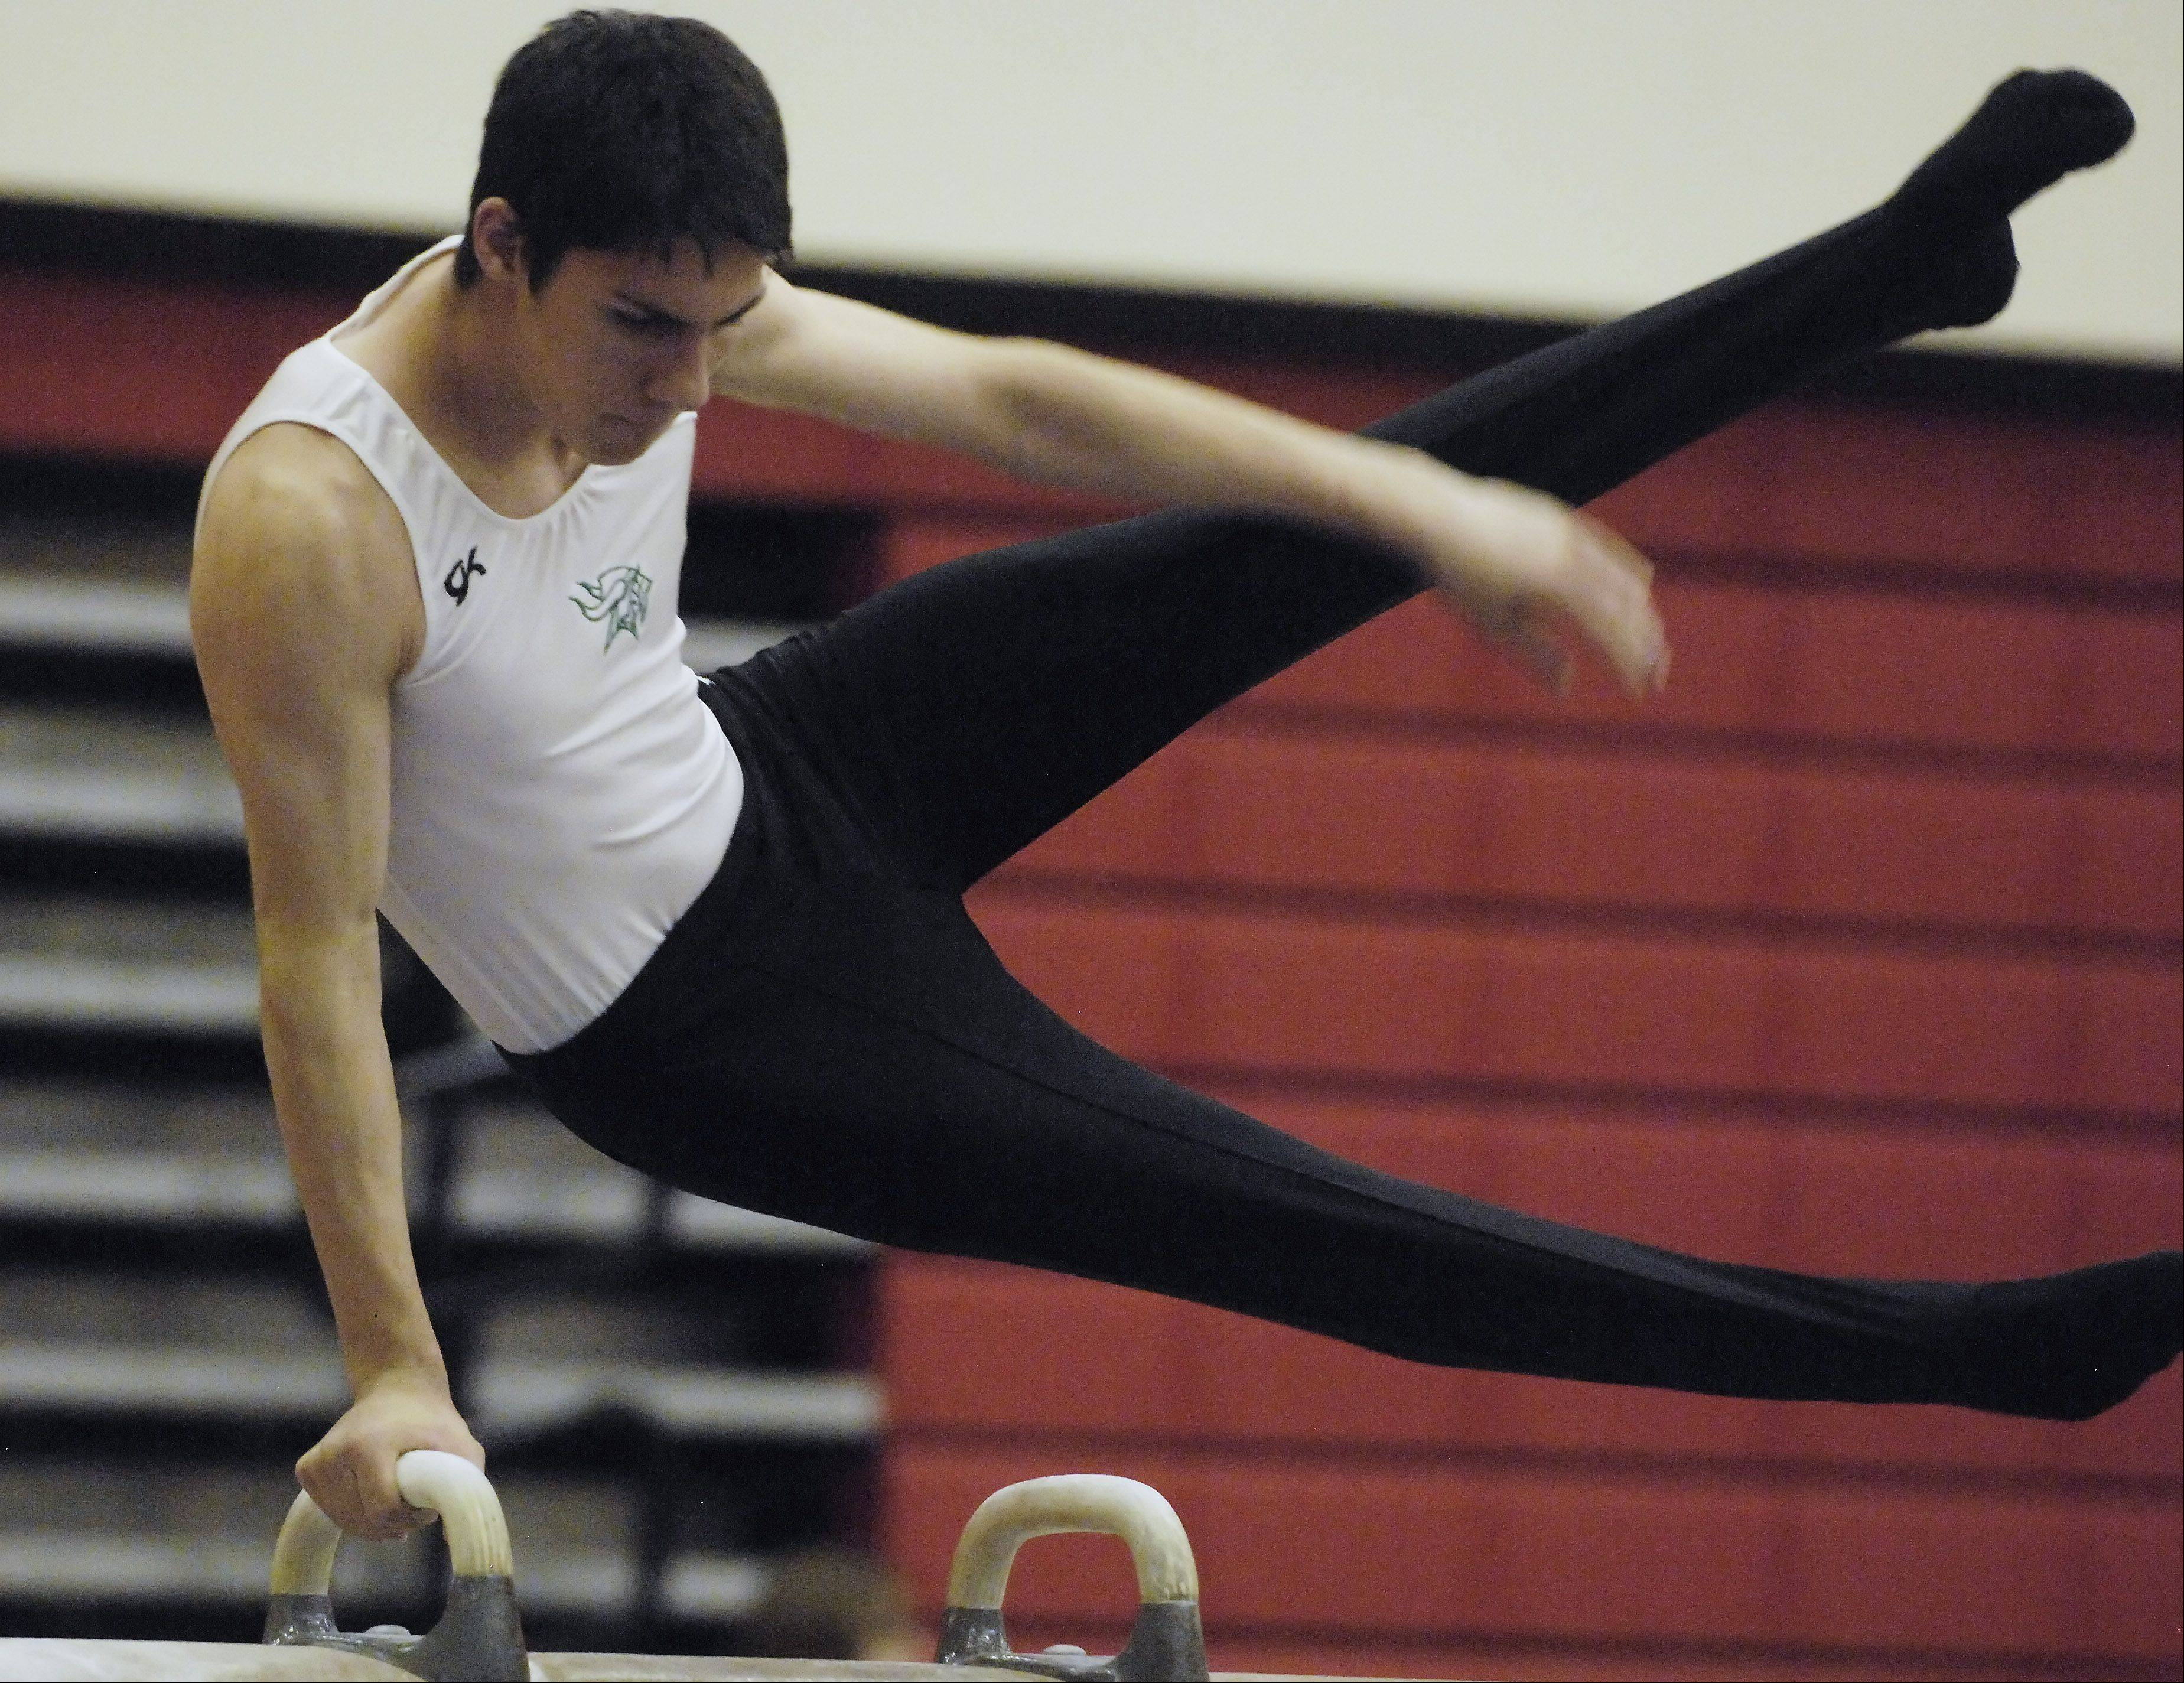 JOE LEWNARD/jlewnard@dailyherald.com ¬ Fremd's C.J. Patton competes on the pommel horse during the Palatine boy's gymnastics sectional meet Saturday.